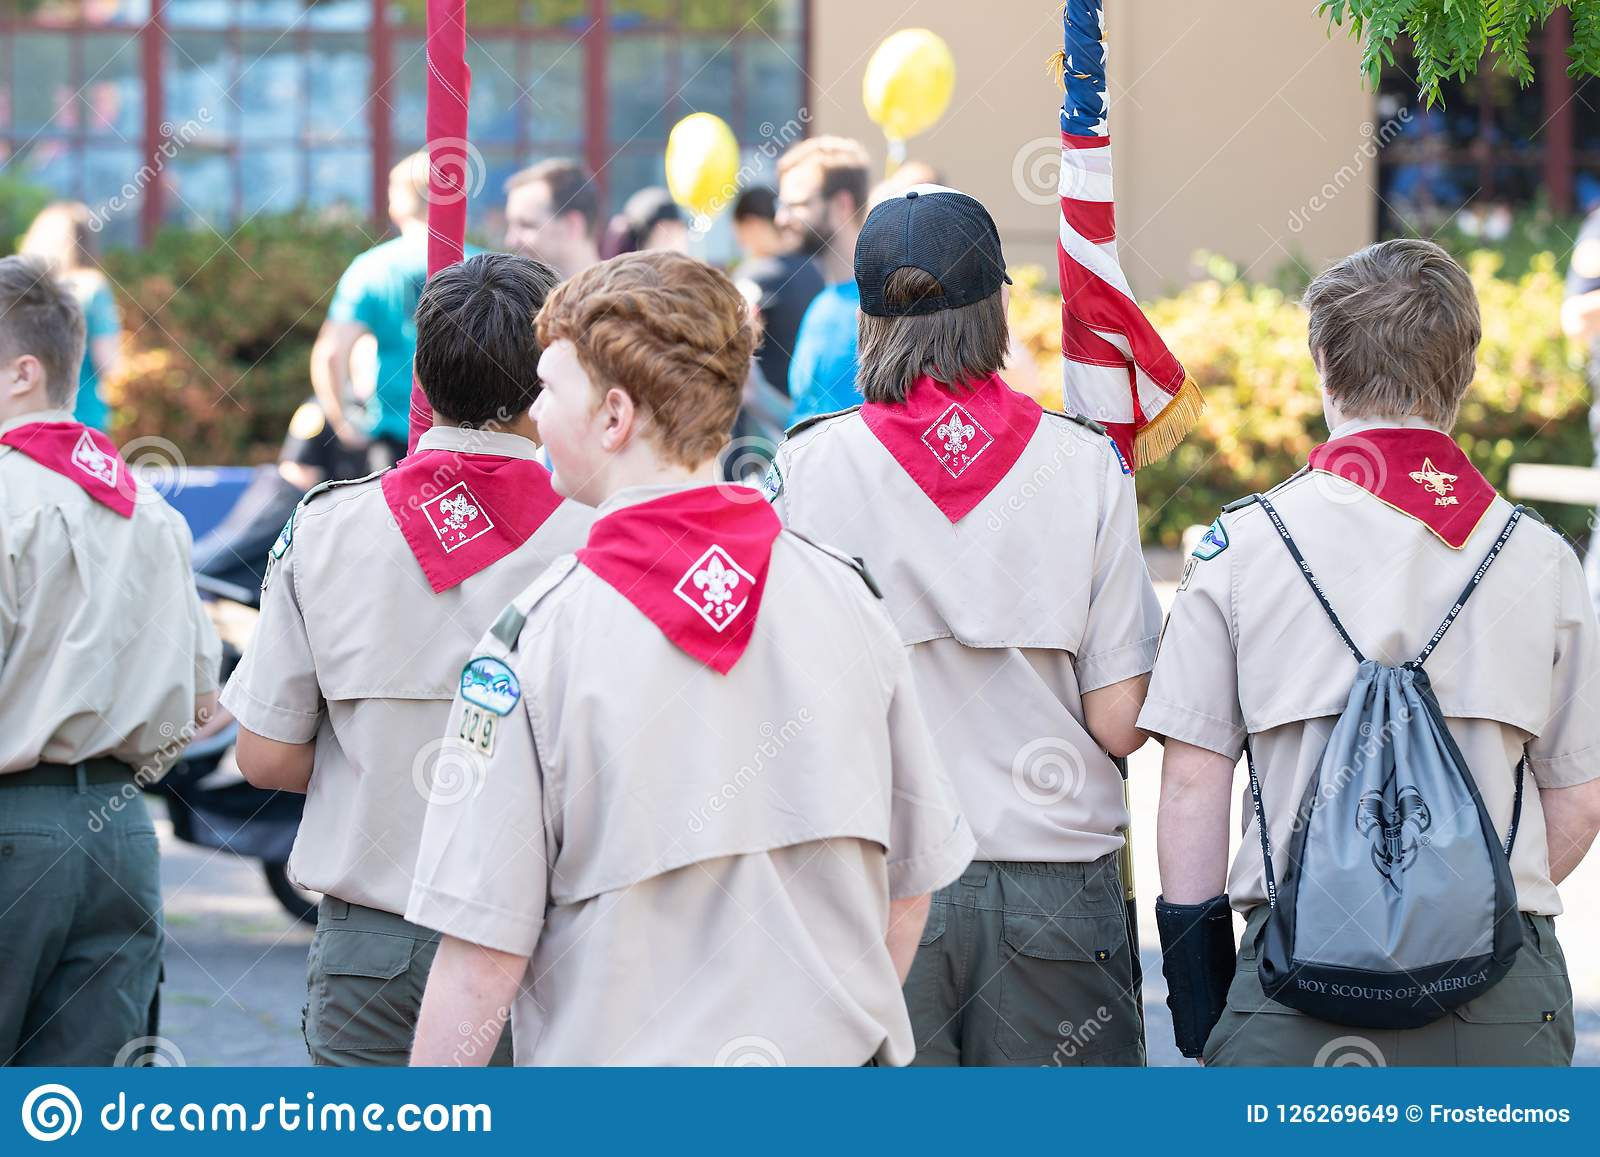 Boy scouts on the street